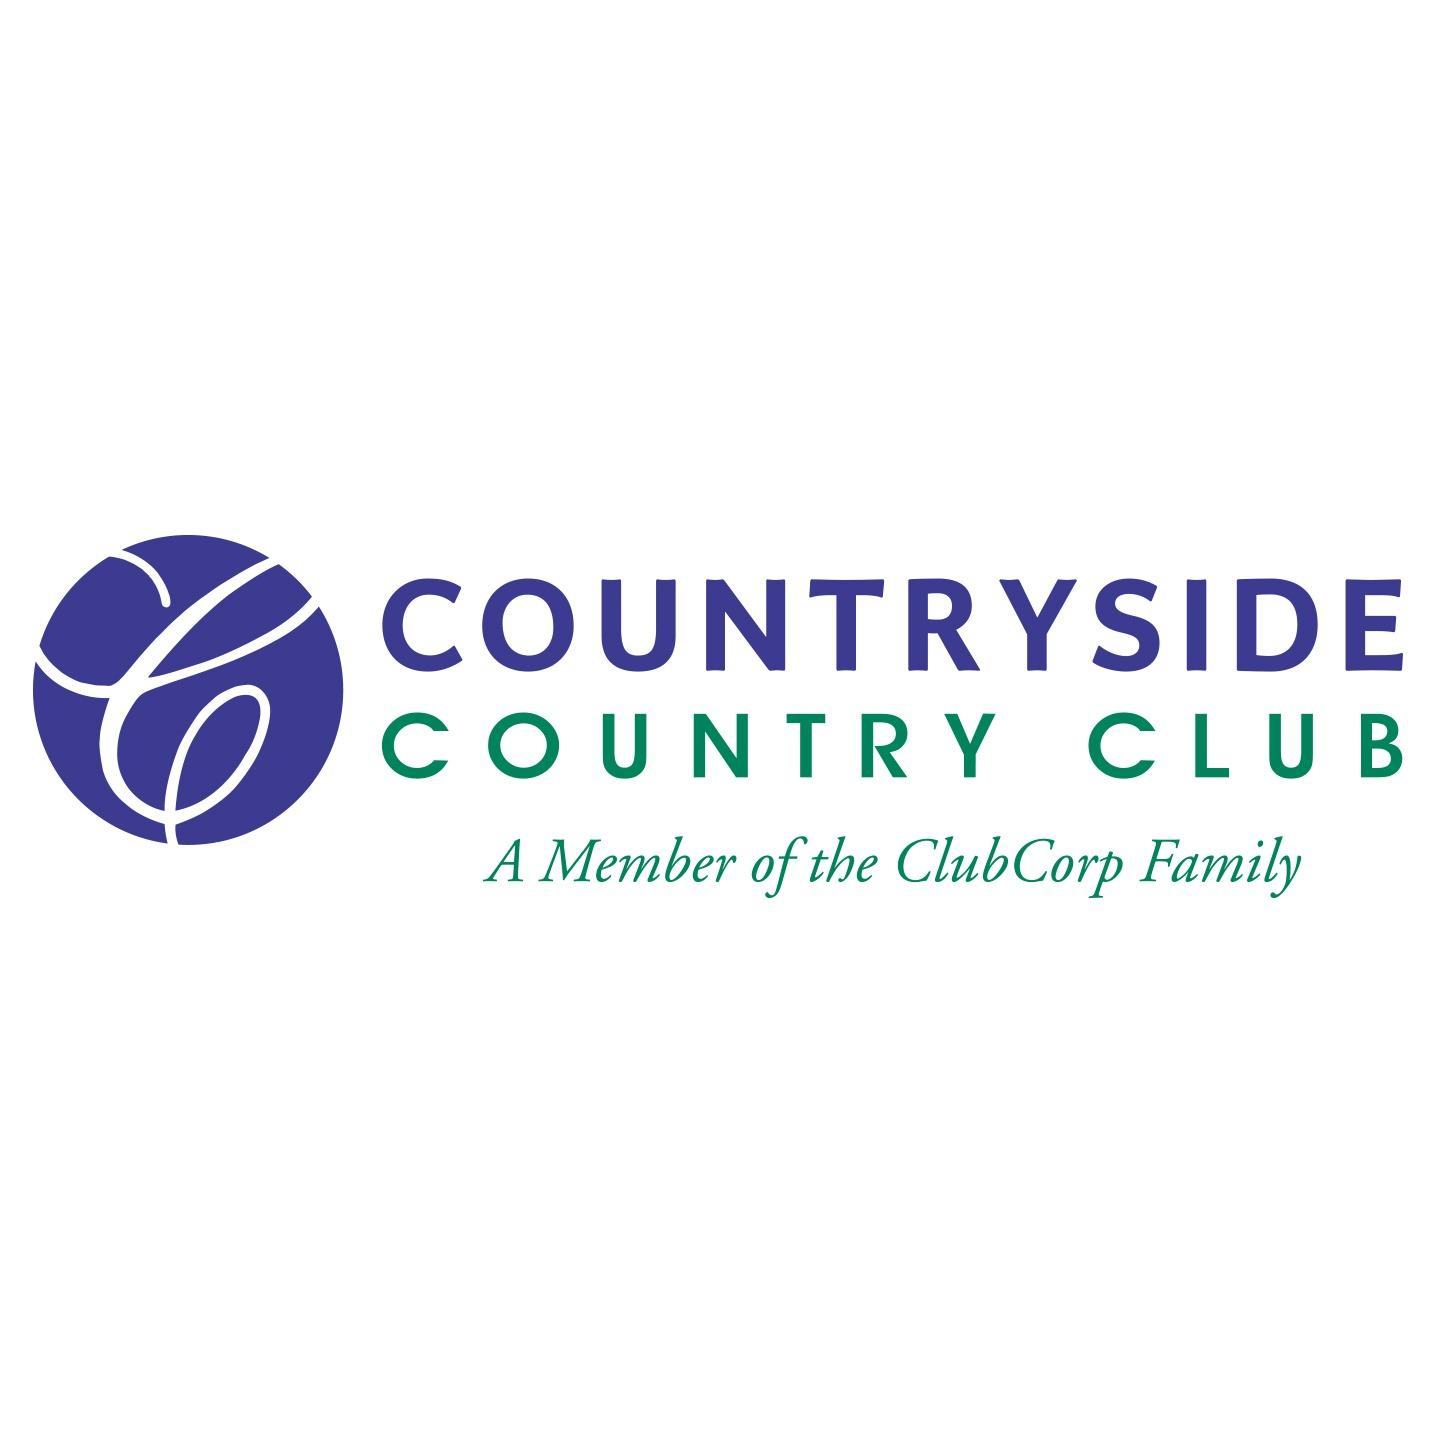 Countryside country club clearwater florida fl for Abc salon equipment in clearwater fl